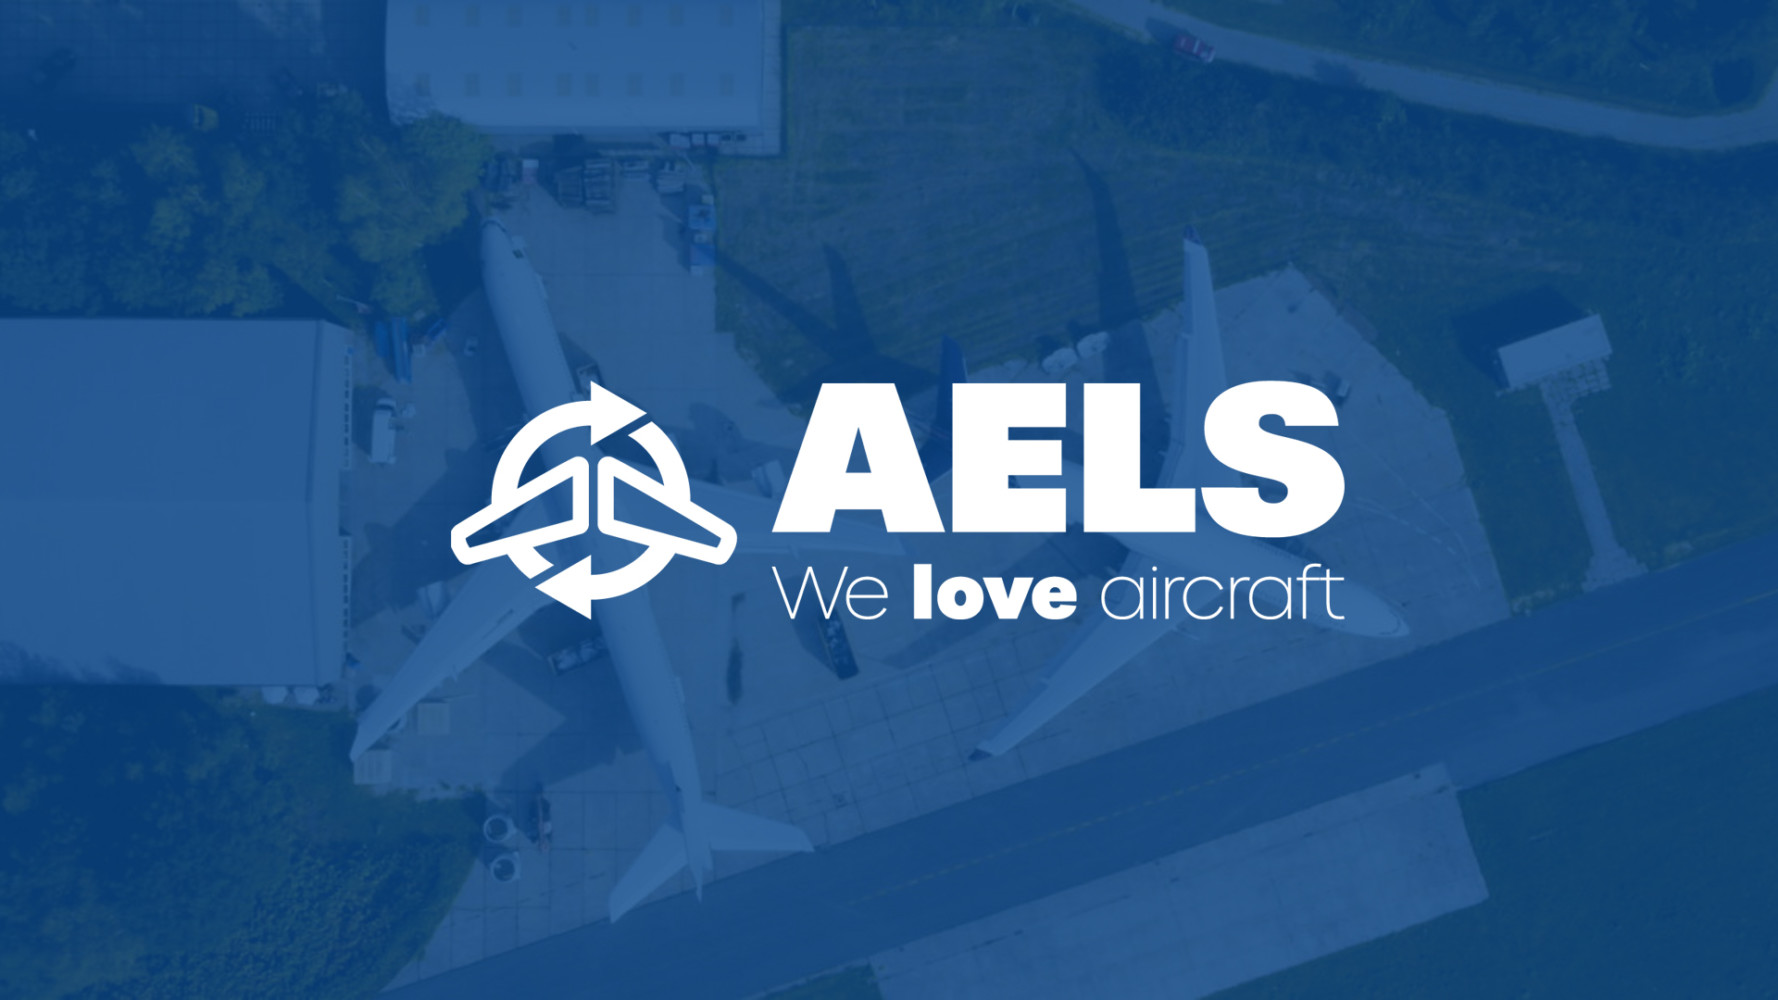 AELS | Aircraft End-of-Life Solutions, We love aircraft